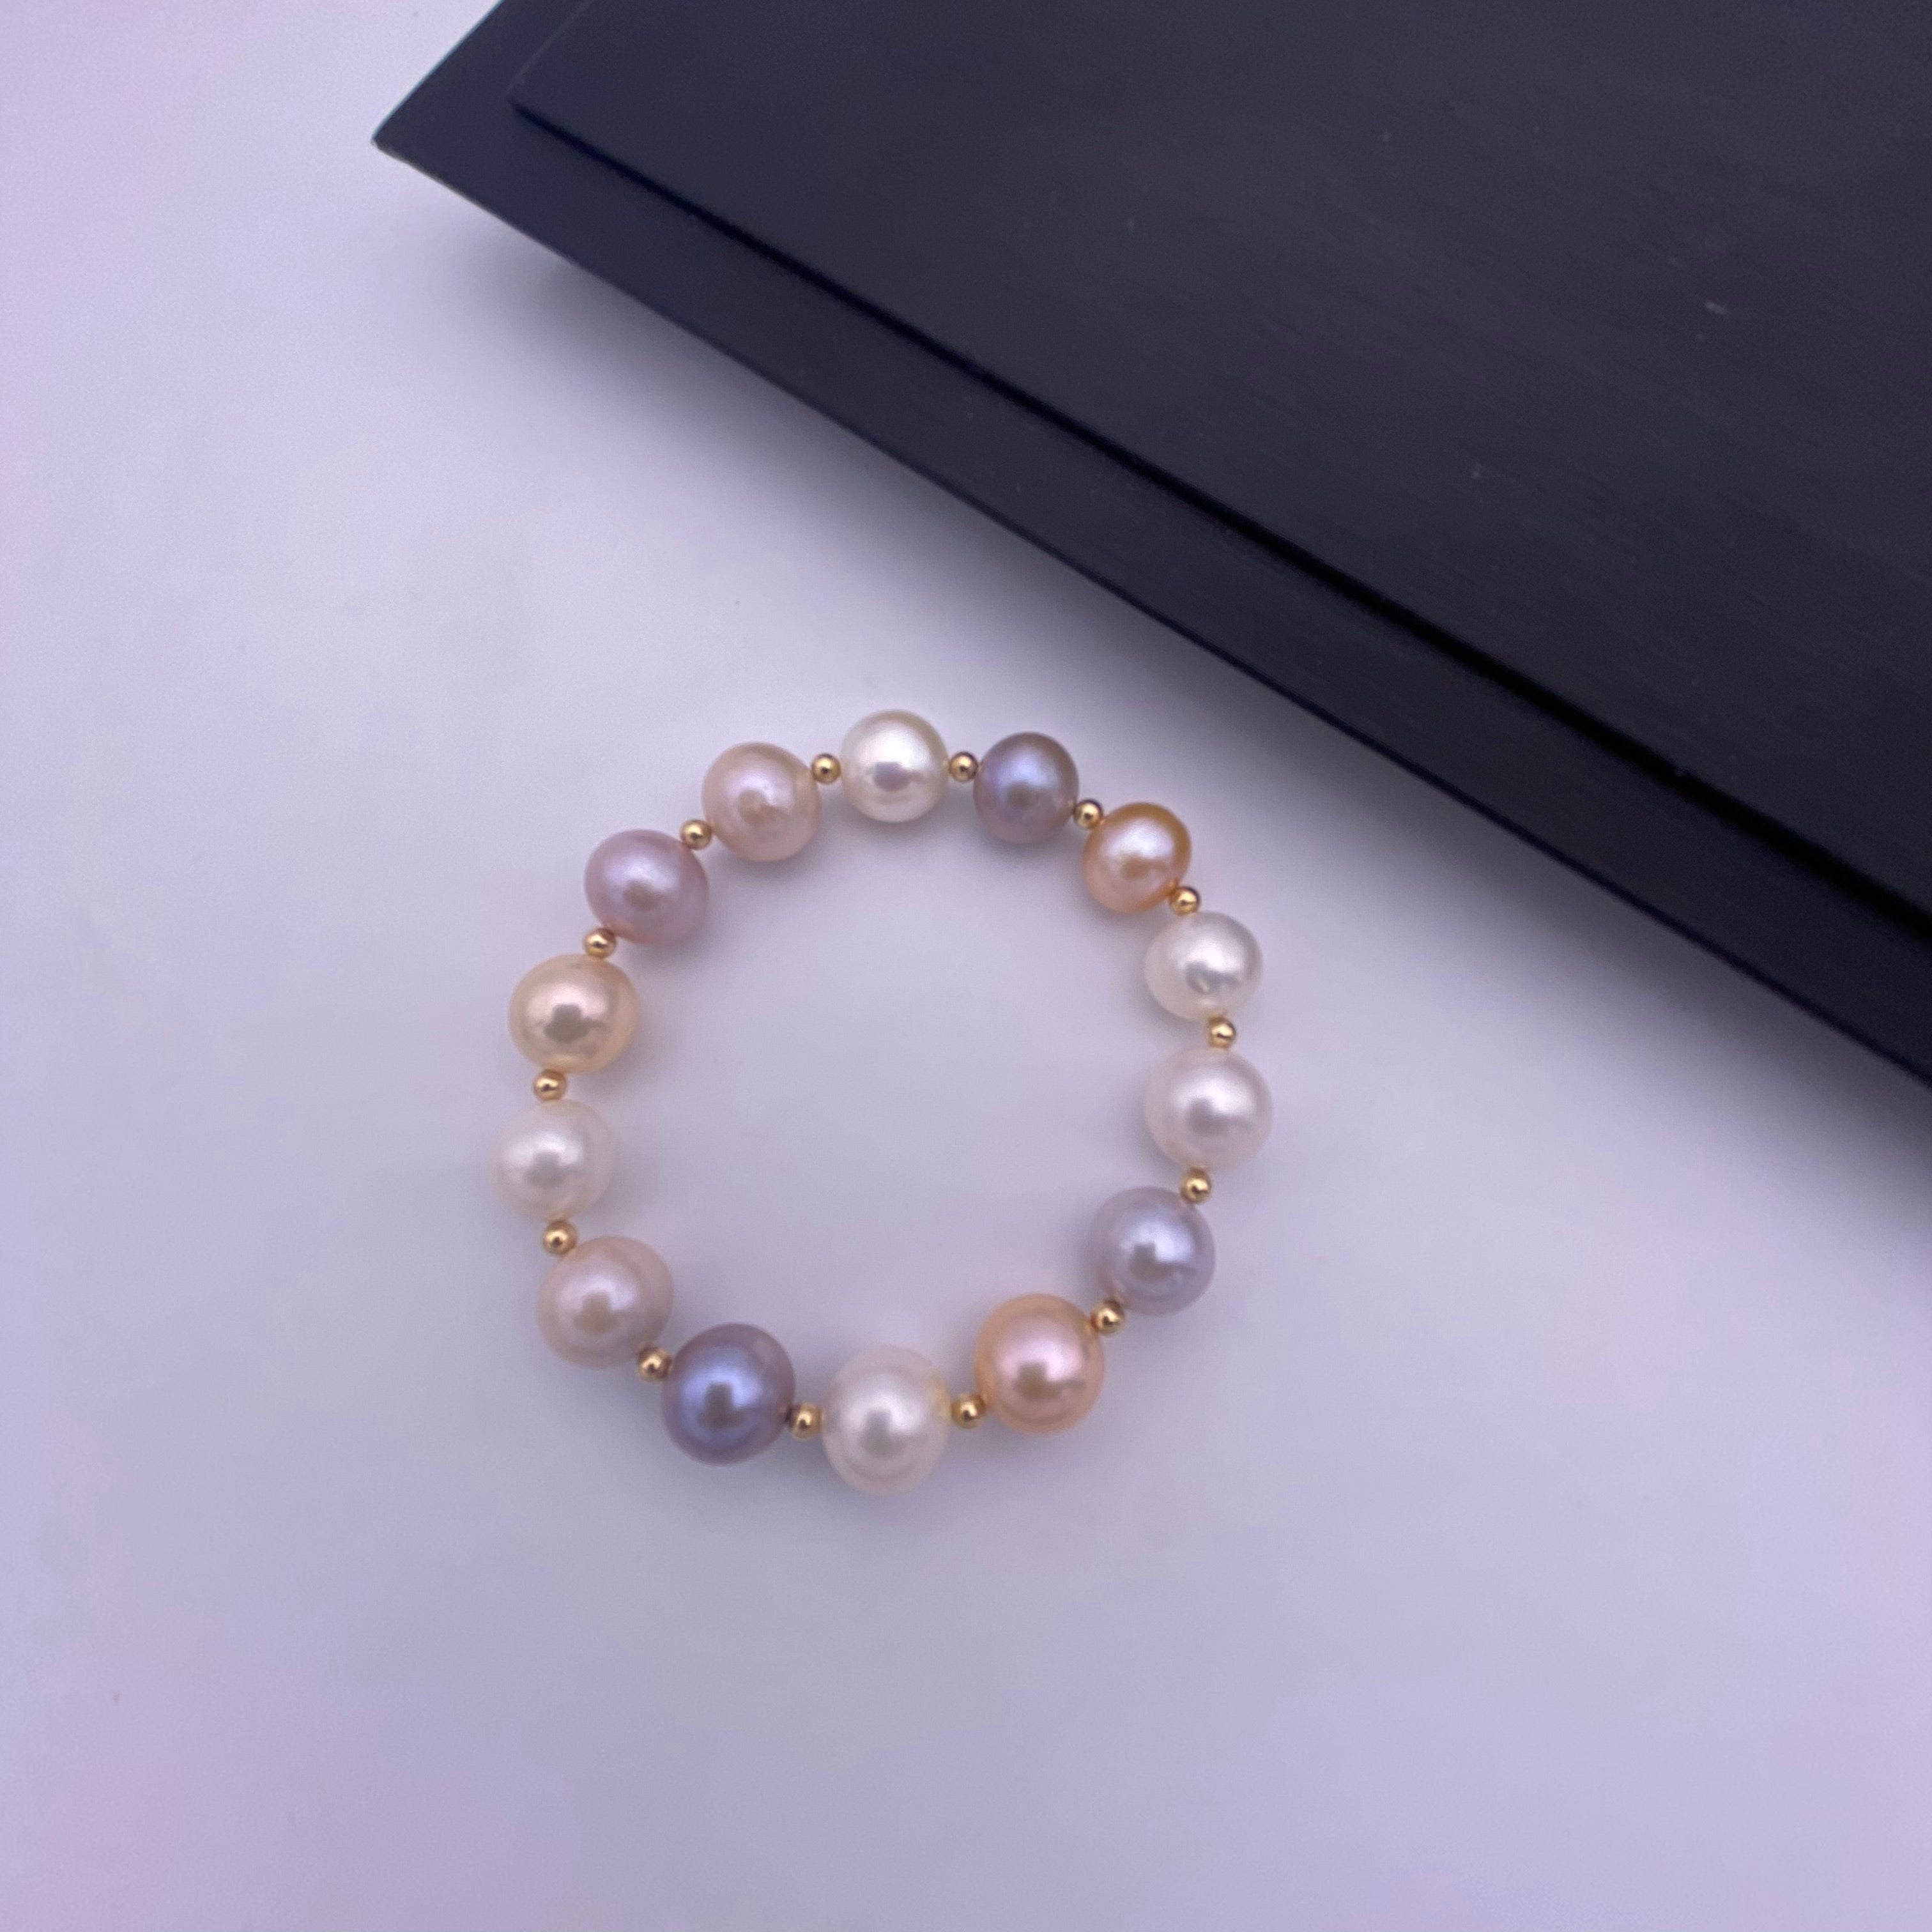 Multi colour freshwater pearl with 14k gold filled beads stretch bracelet